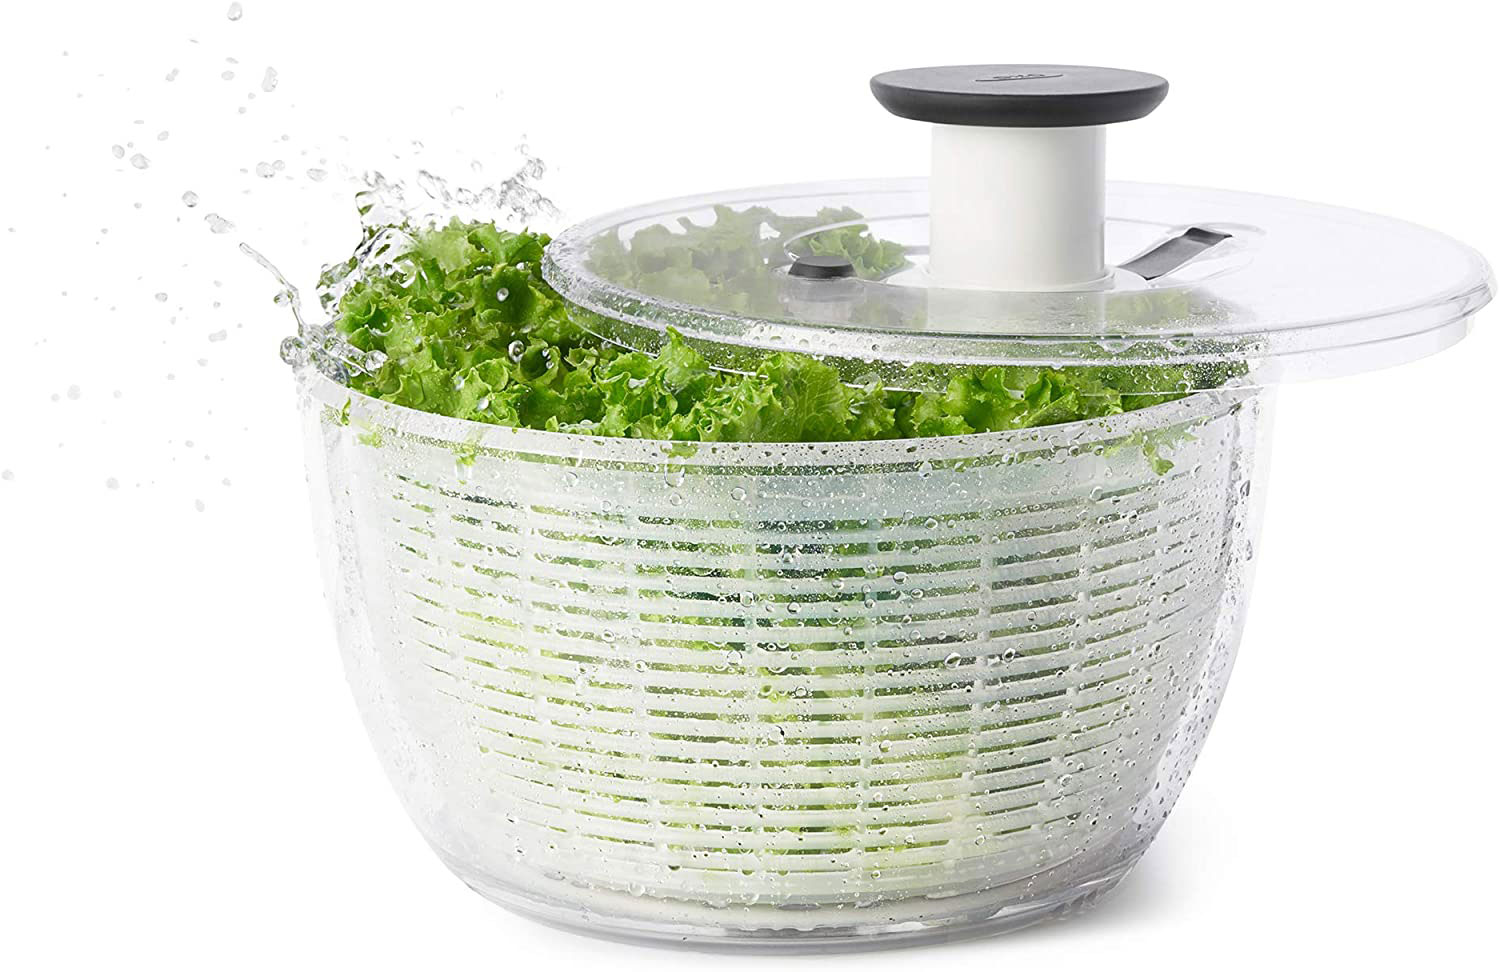 OXO Salad Spinner - One-handed design for maximum drying with minimum effort